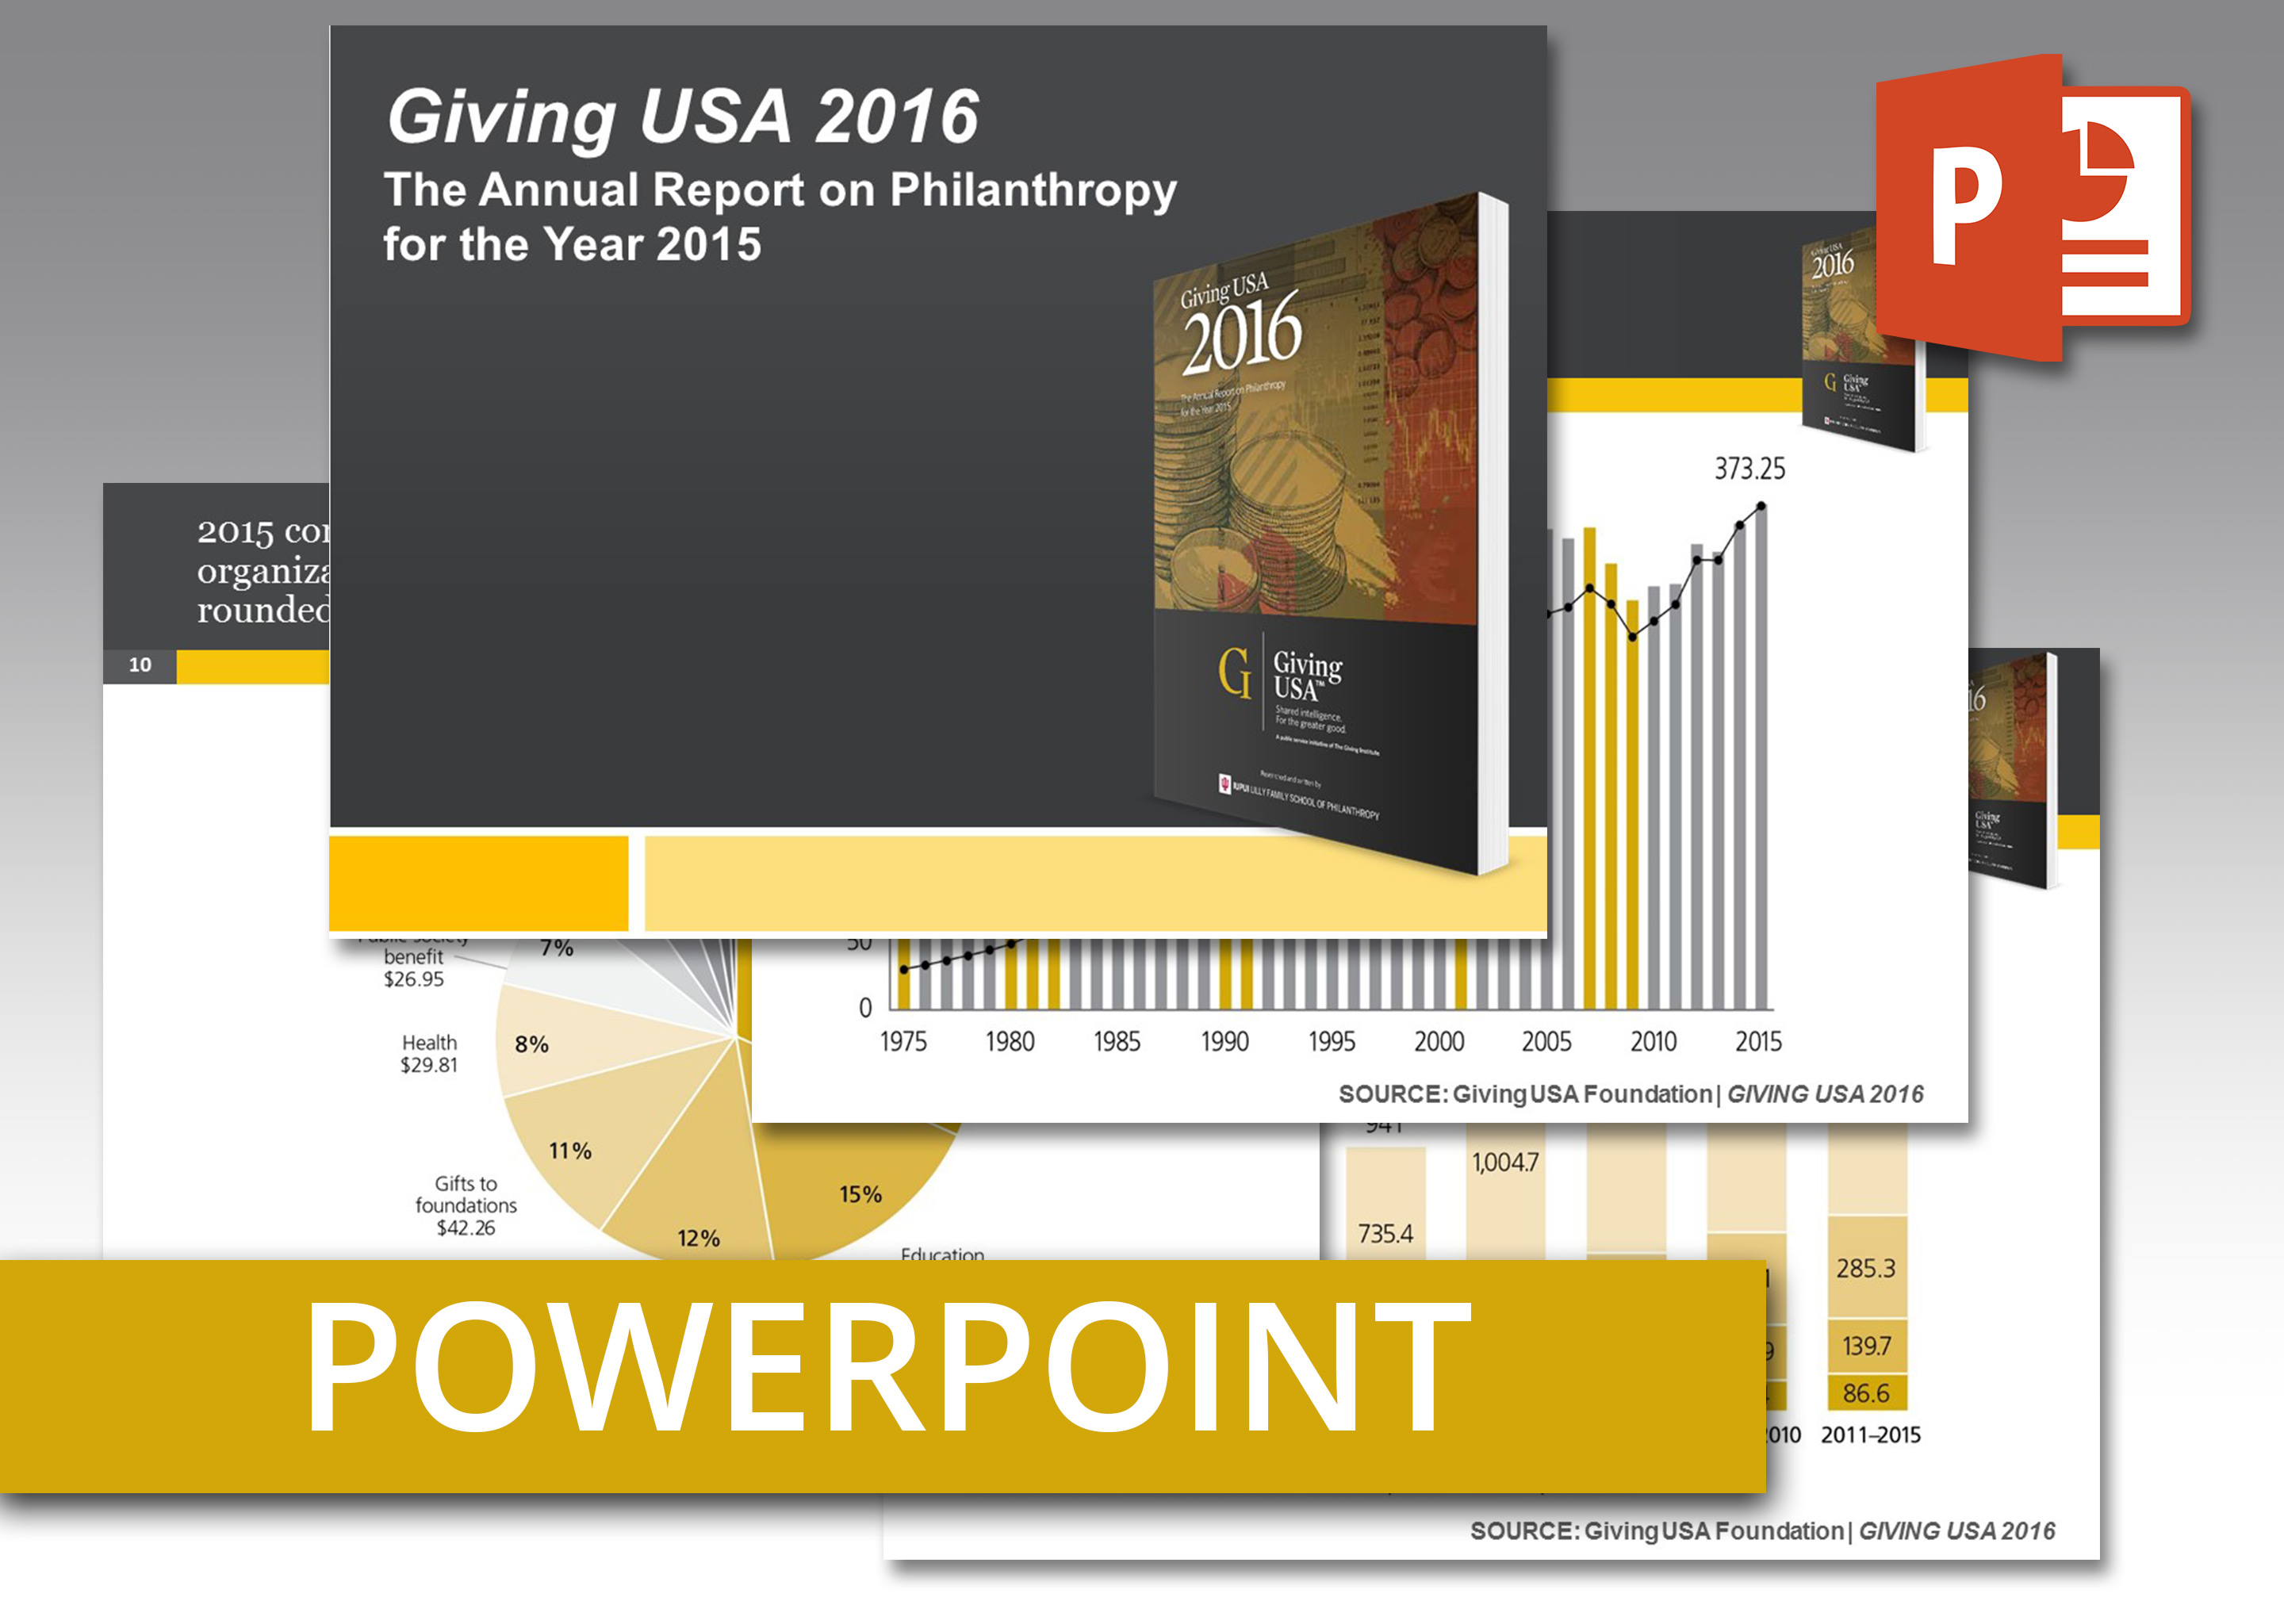 Coolmathgamesus  Stunning Giving Usa  Powerpoint An Easytouse Presentation Of Report  With Fetching Giving Usa  Powerpoint An Easytouse Presentation Of Report Findings Including Talking Points With Astounding Convert Powerpoint To Pdf Also Powerpoint Slide Size In Addition Convert Pdf To Powerpoint And Pdf To Powerpoint As Well As How To Make A Picture Transparent In Powerpoint Additionally Powerpoint Templates Free From Givingusaorg With Coolmathgamesus  Fetching Giving Usa  Powerpoint An Easytouse Presentation Of Report  With Astounding Giving Usa  Powerpoint An Easytouse Presentation Of Report Findings Including Talking Points And Stunning Convert Powerpoint To Pdf Also Powerpoint Slide Size In Addition Convert Pdf To Powerpoint From Givingusaorg